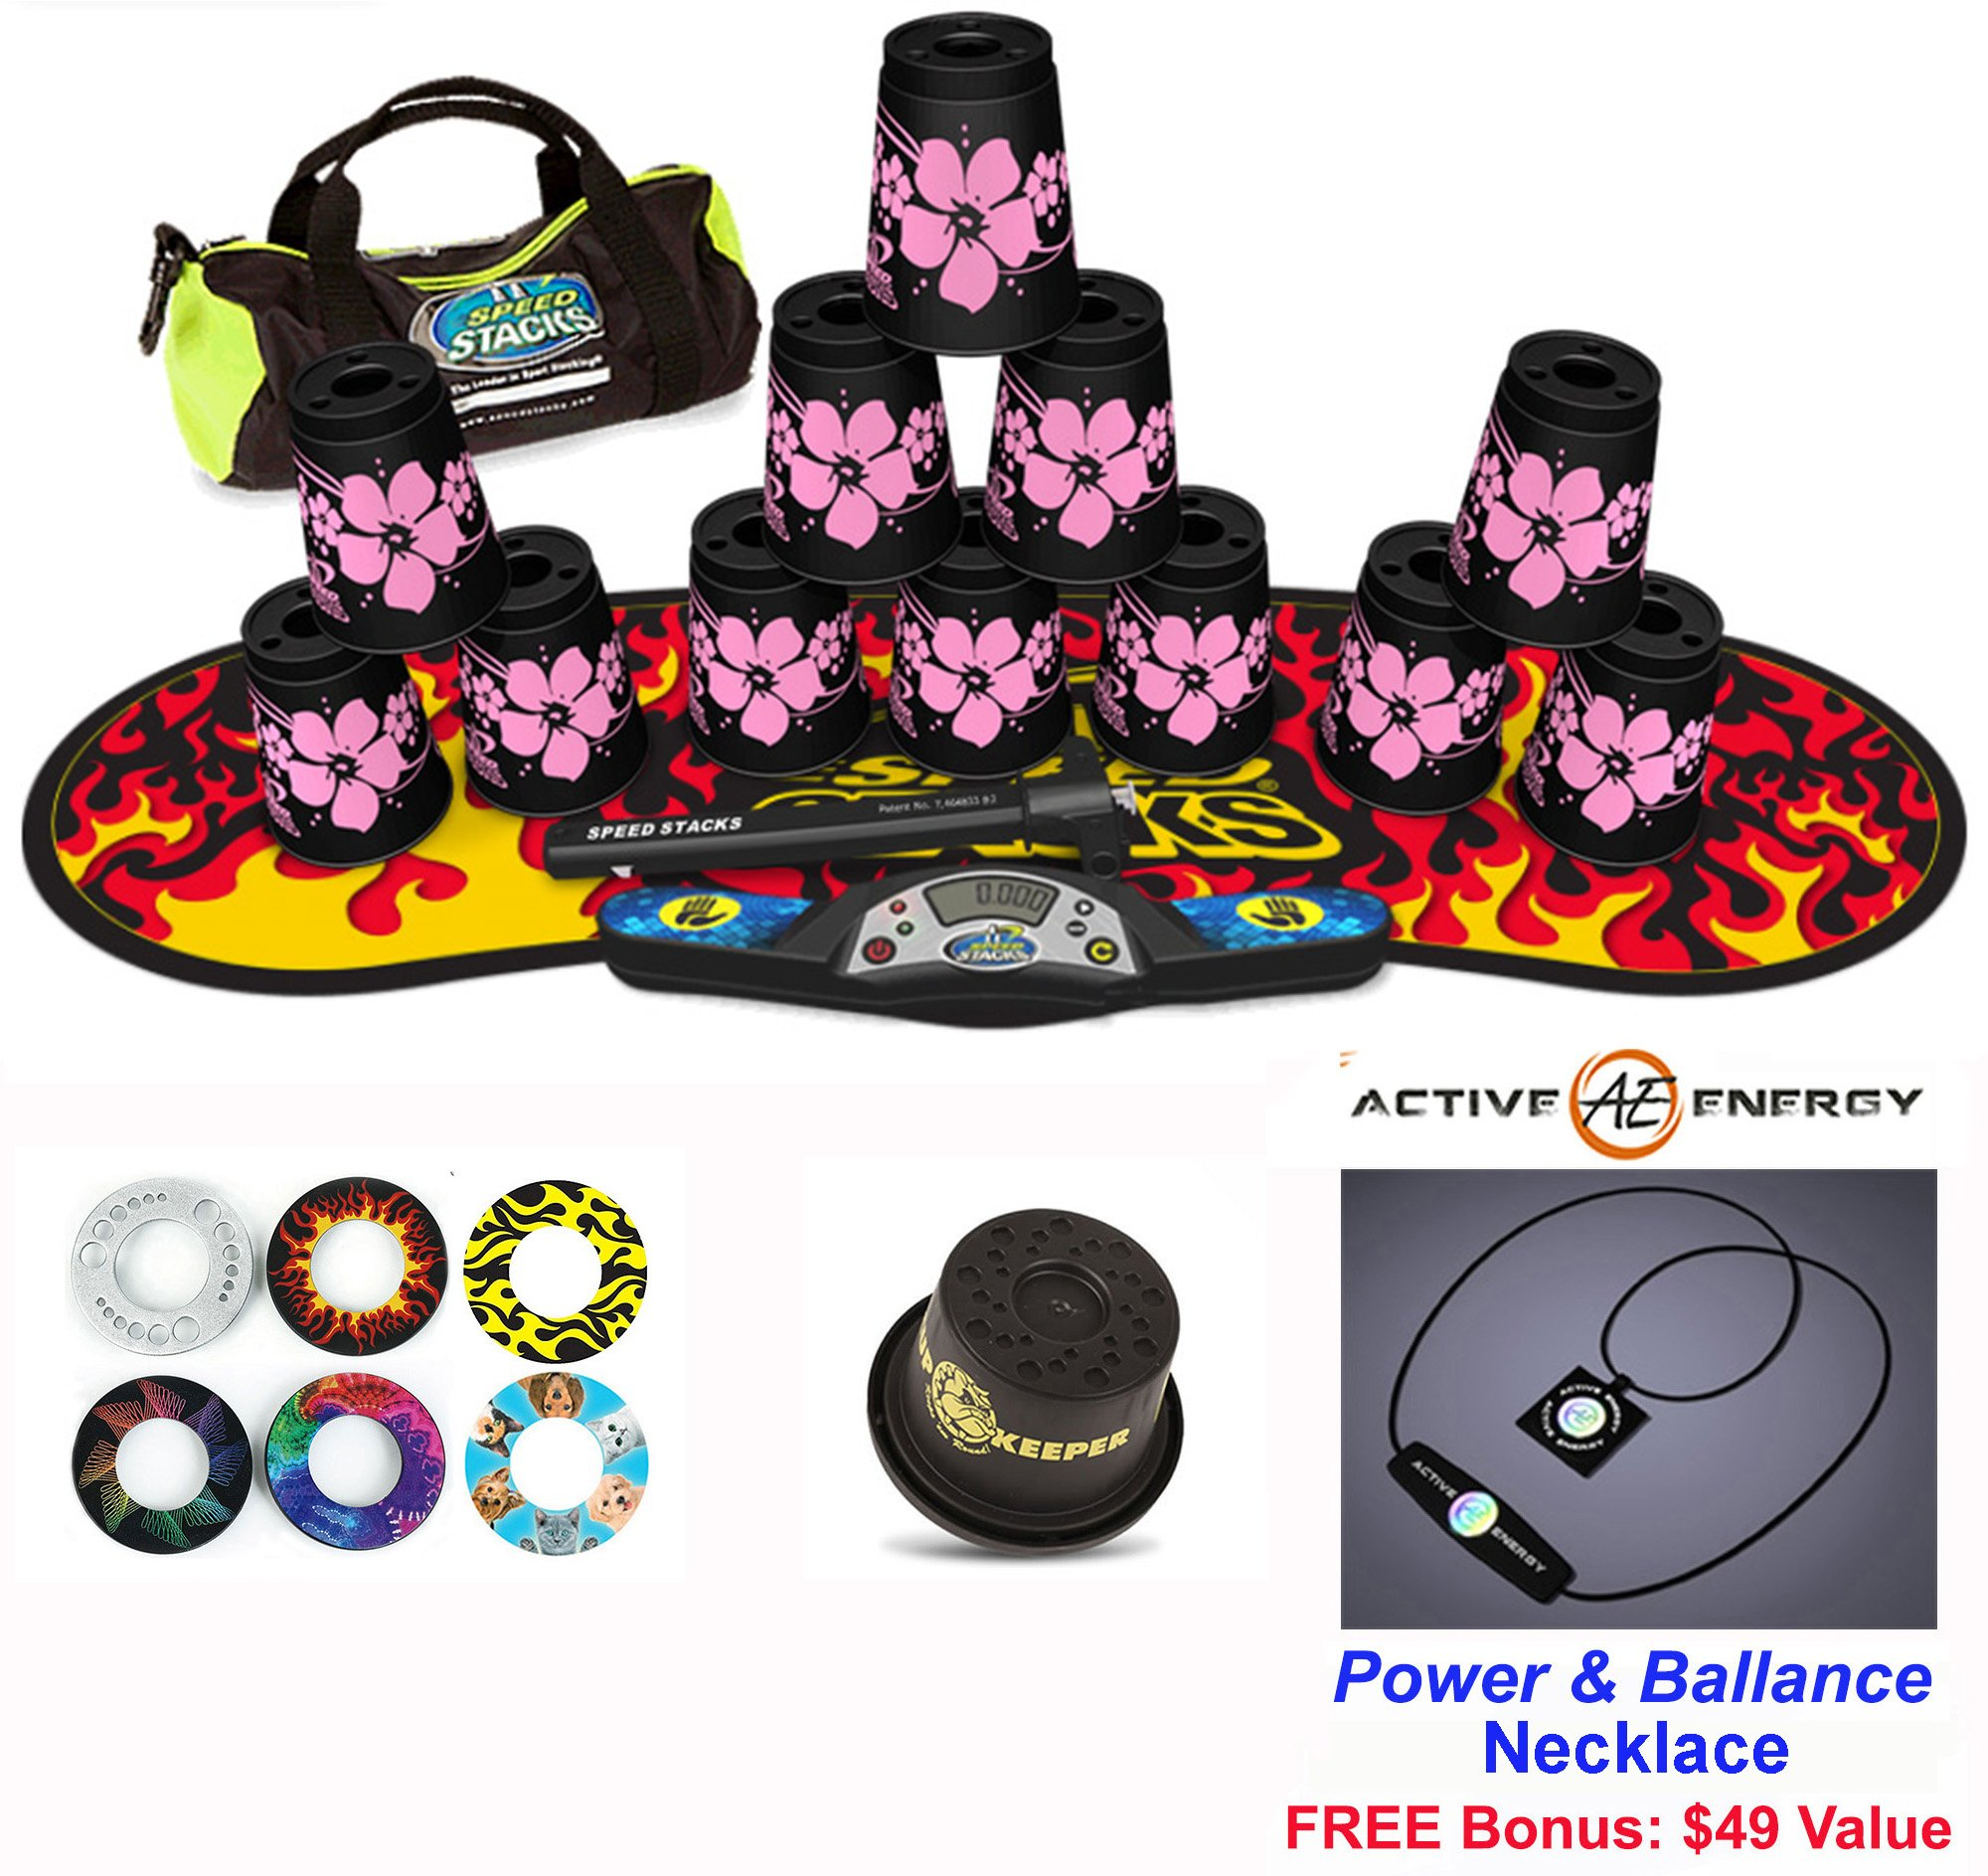 Speed Stacks Combo Set 'The Works'': 12 PINK HAWAIIAN 4'' Cups, Black Flame Gen 3 Mat, G4 Pro Timer, Cup Keeper, Stem, Gear Bag + Active Energy Necklace